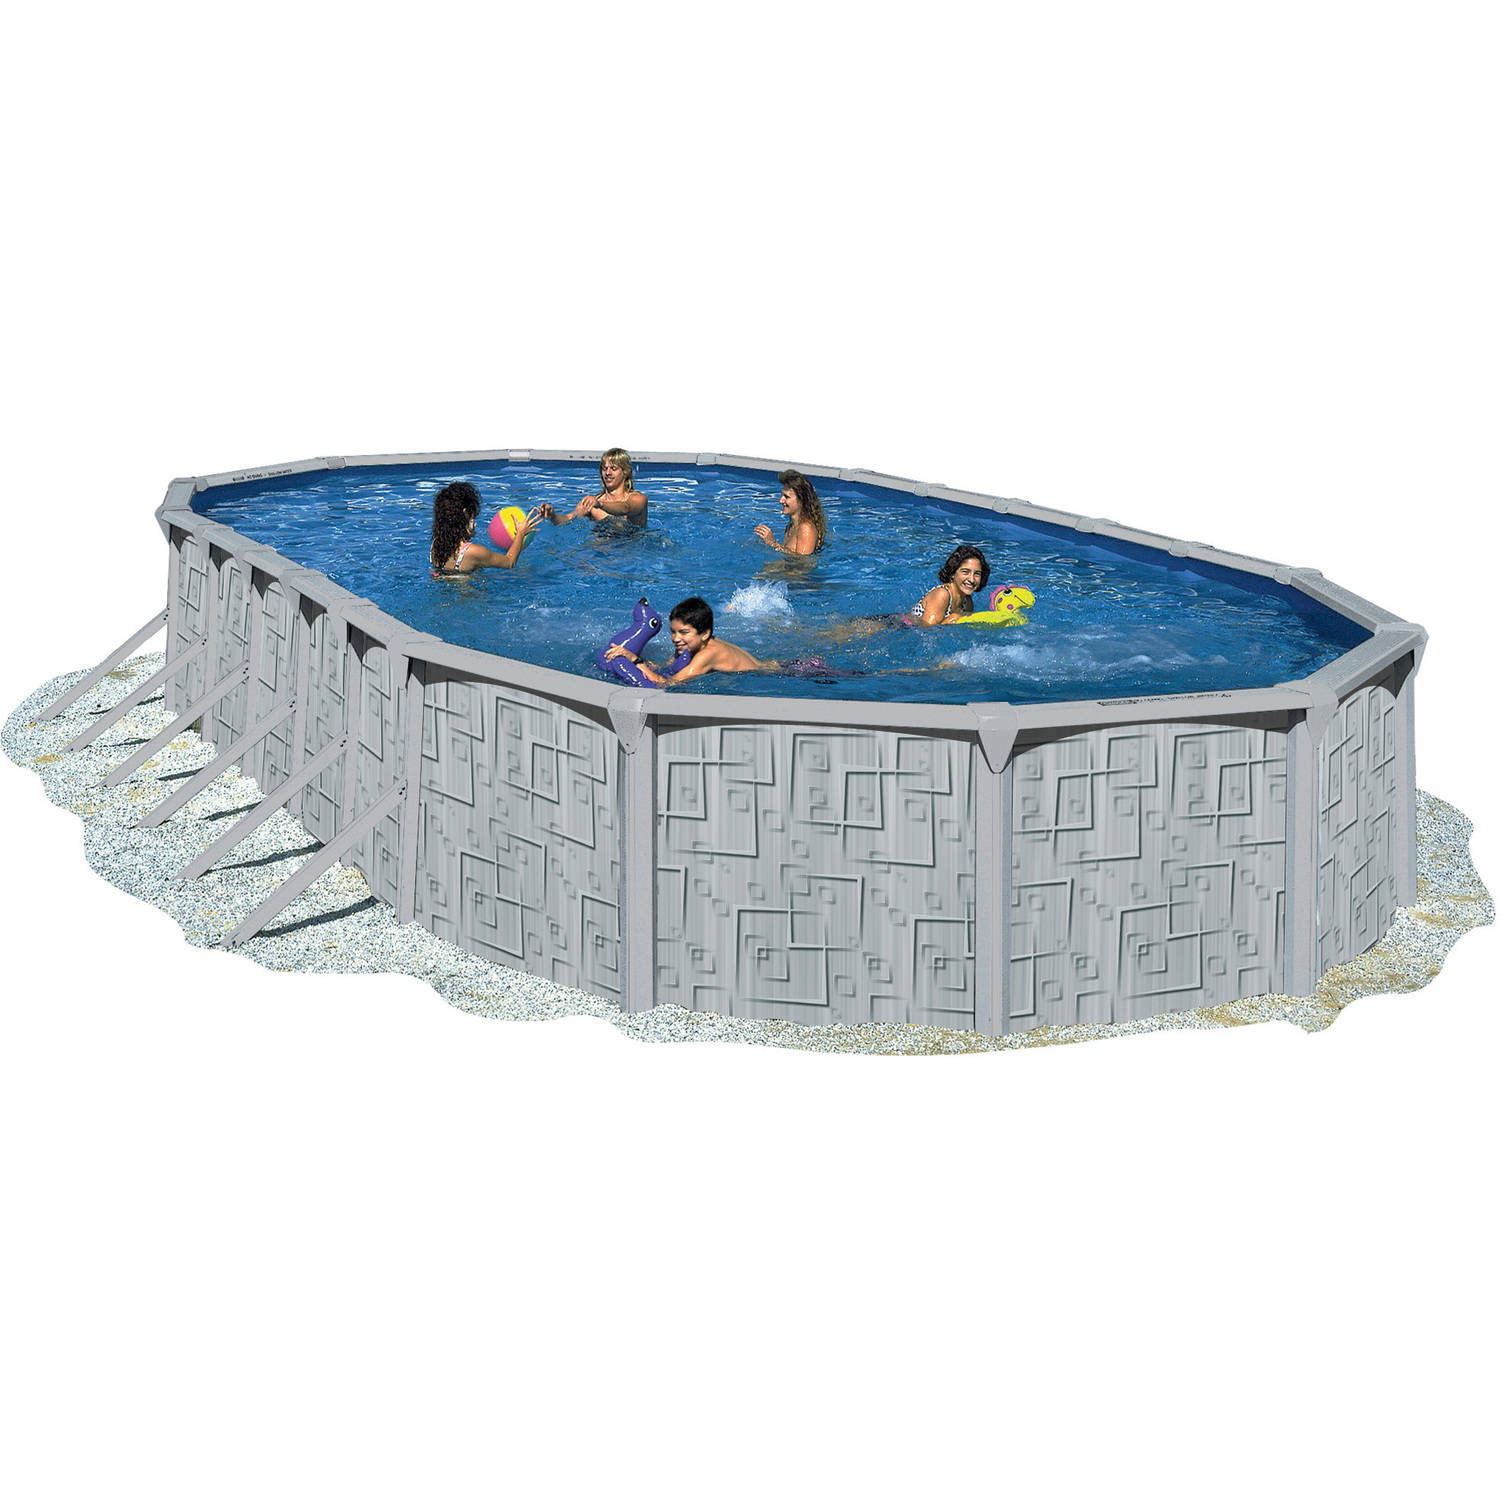 "Click here to buy Heritage 45' x 18' x 52"" Illusion Steel Wall Above Ground Swimming Pool by Heritage."